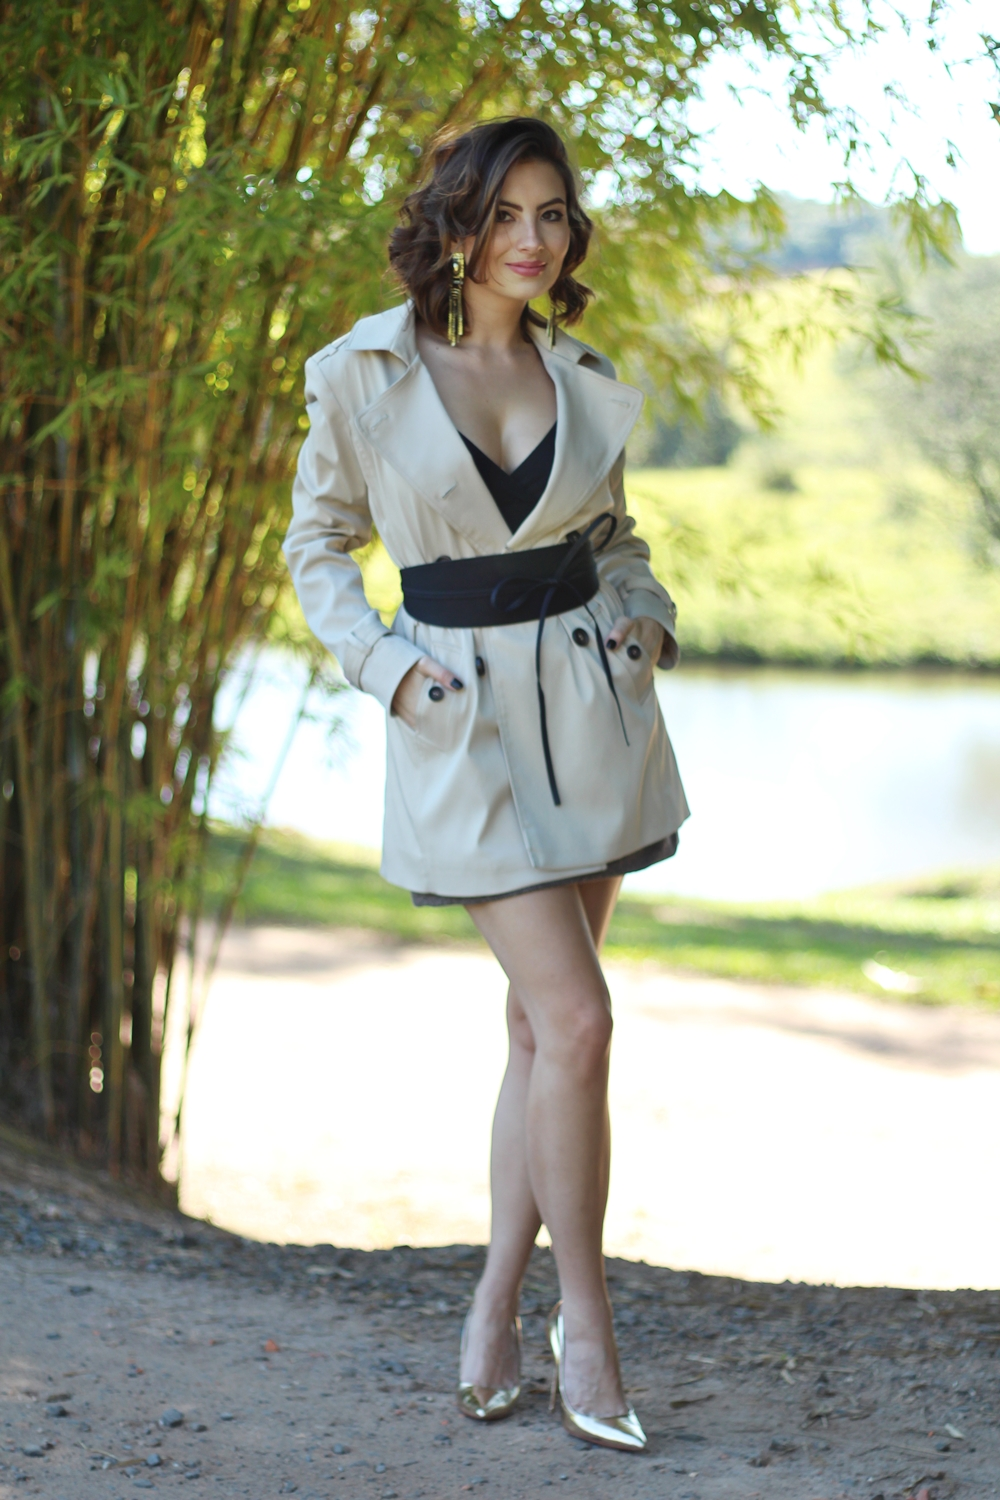 como-usar-trench-coat-look-noite-blog-van-duarte-8